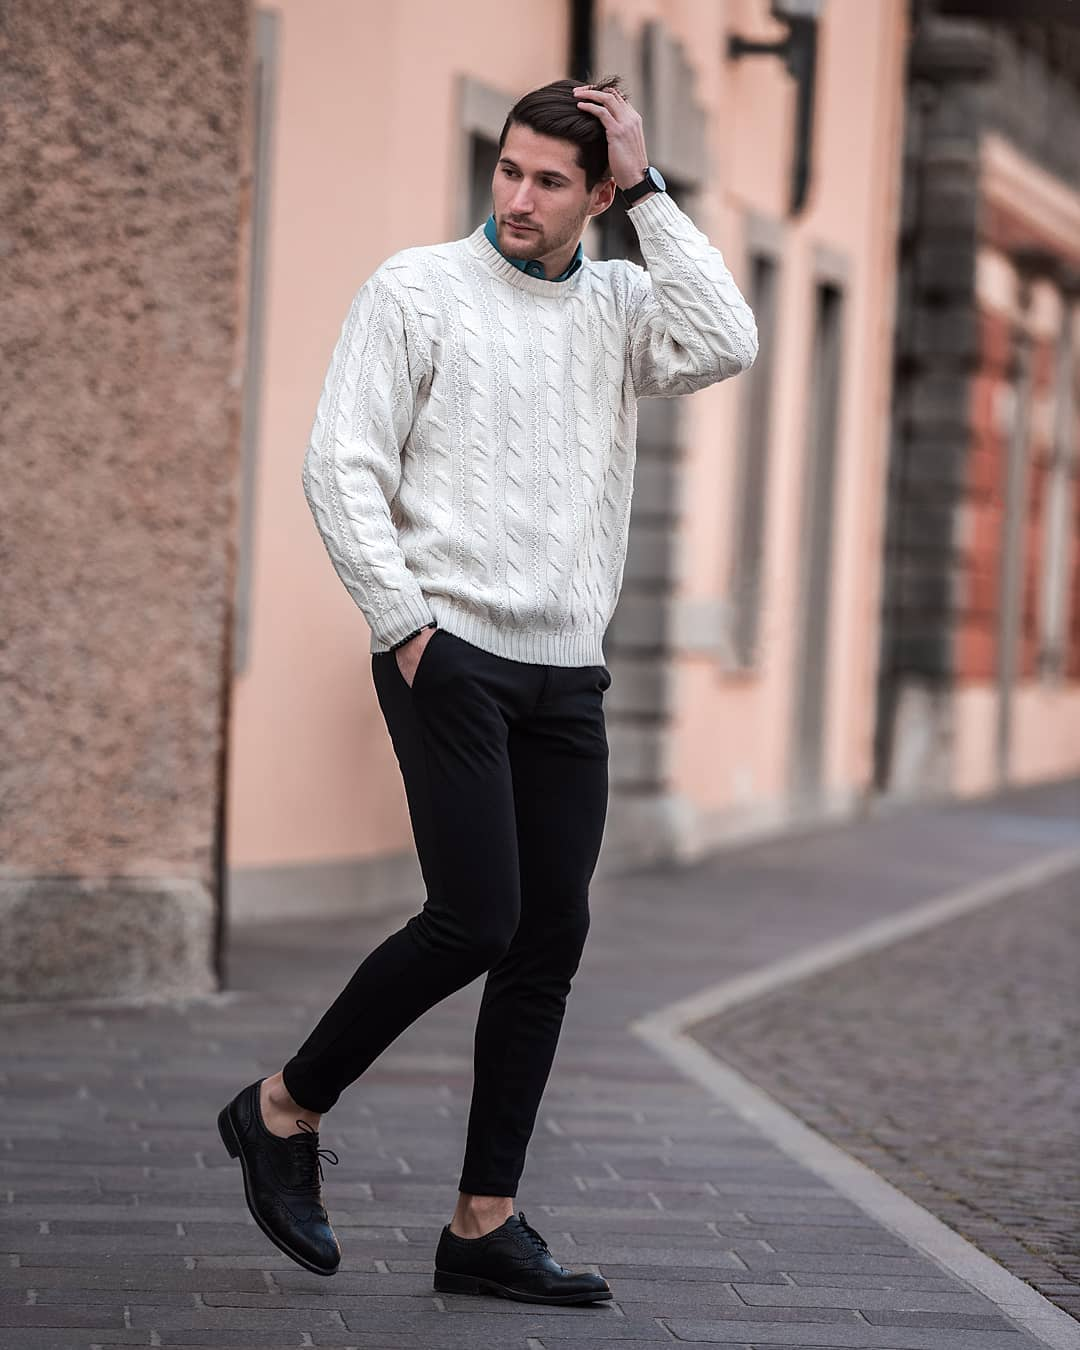 5 Sweater Outfits For Men. How To Look Good In Sweaters #sweater #outfits #mensfashion